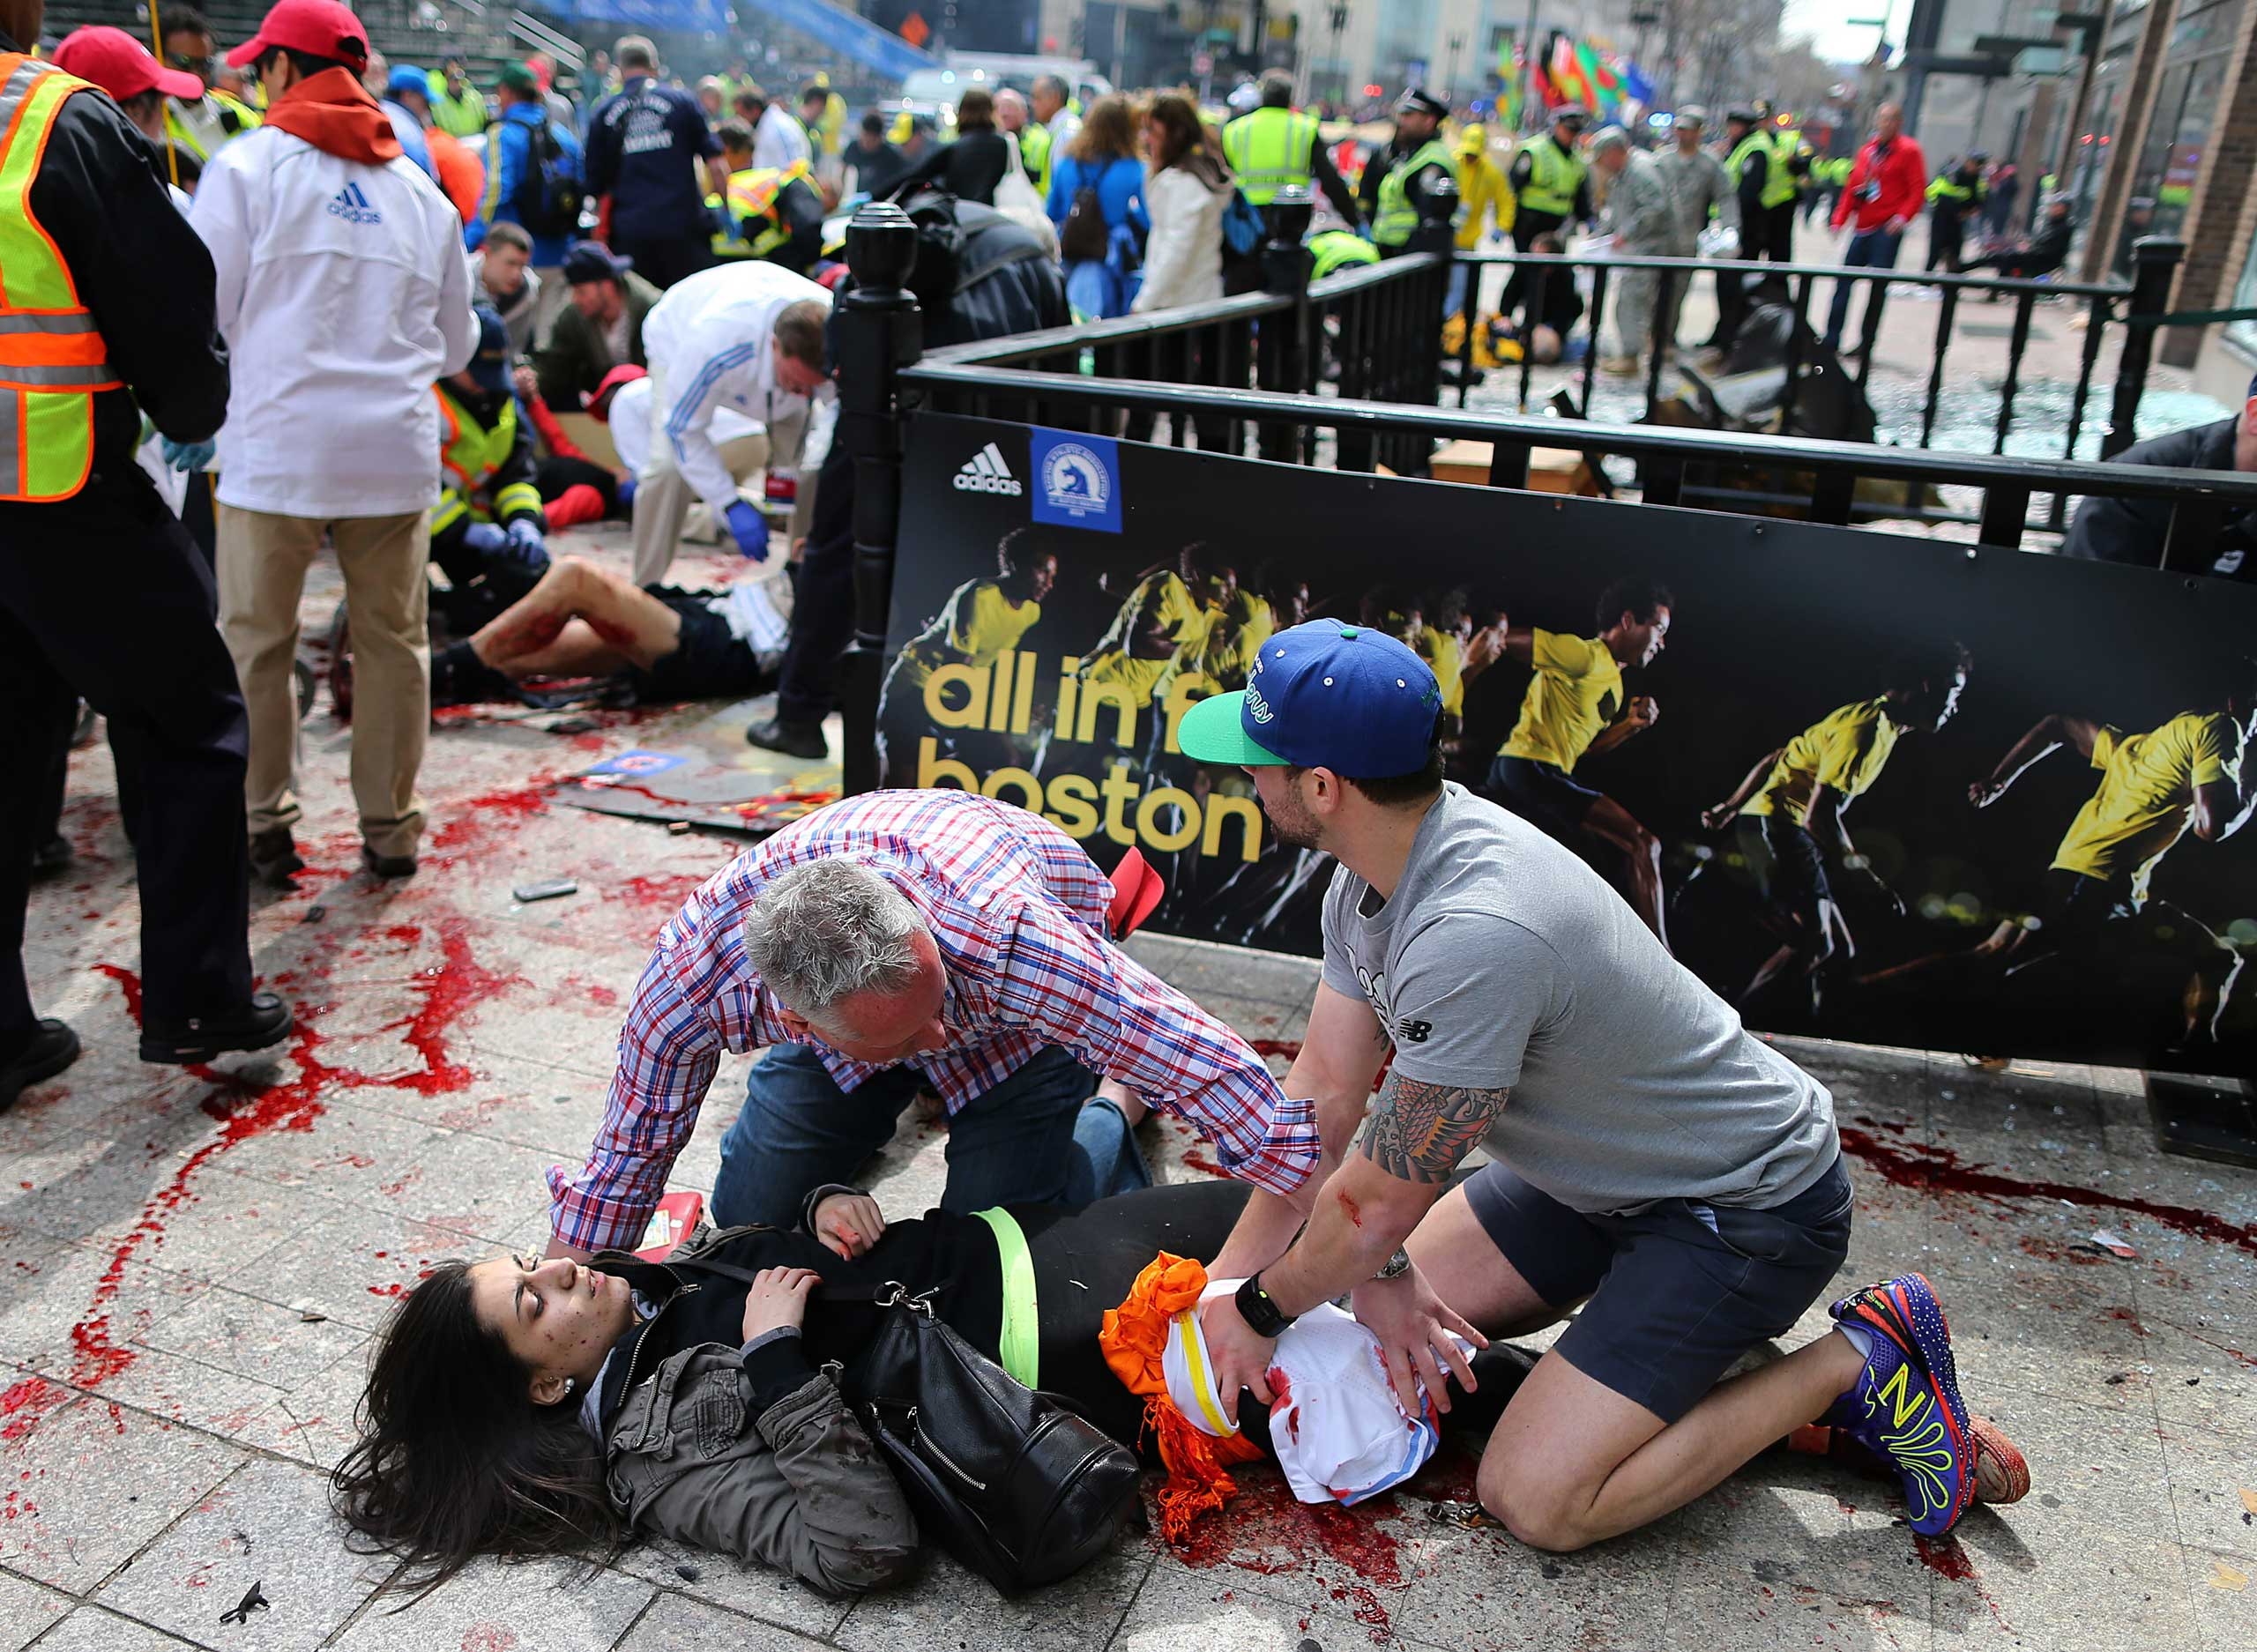 April 15, 2013. Bystanders help a wounded woman at the scene of the first explosion on Boylston Street near the finish line.